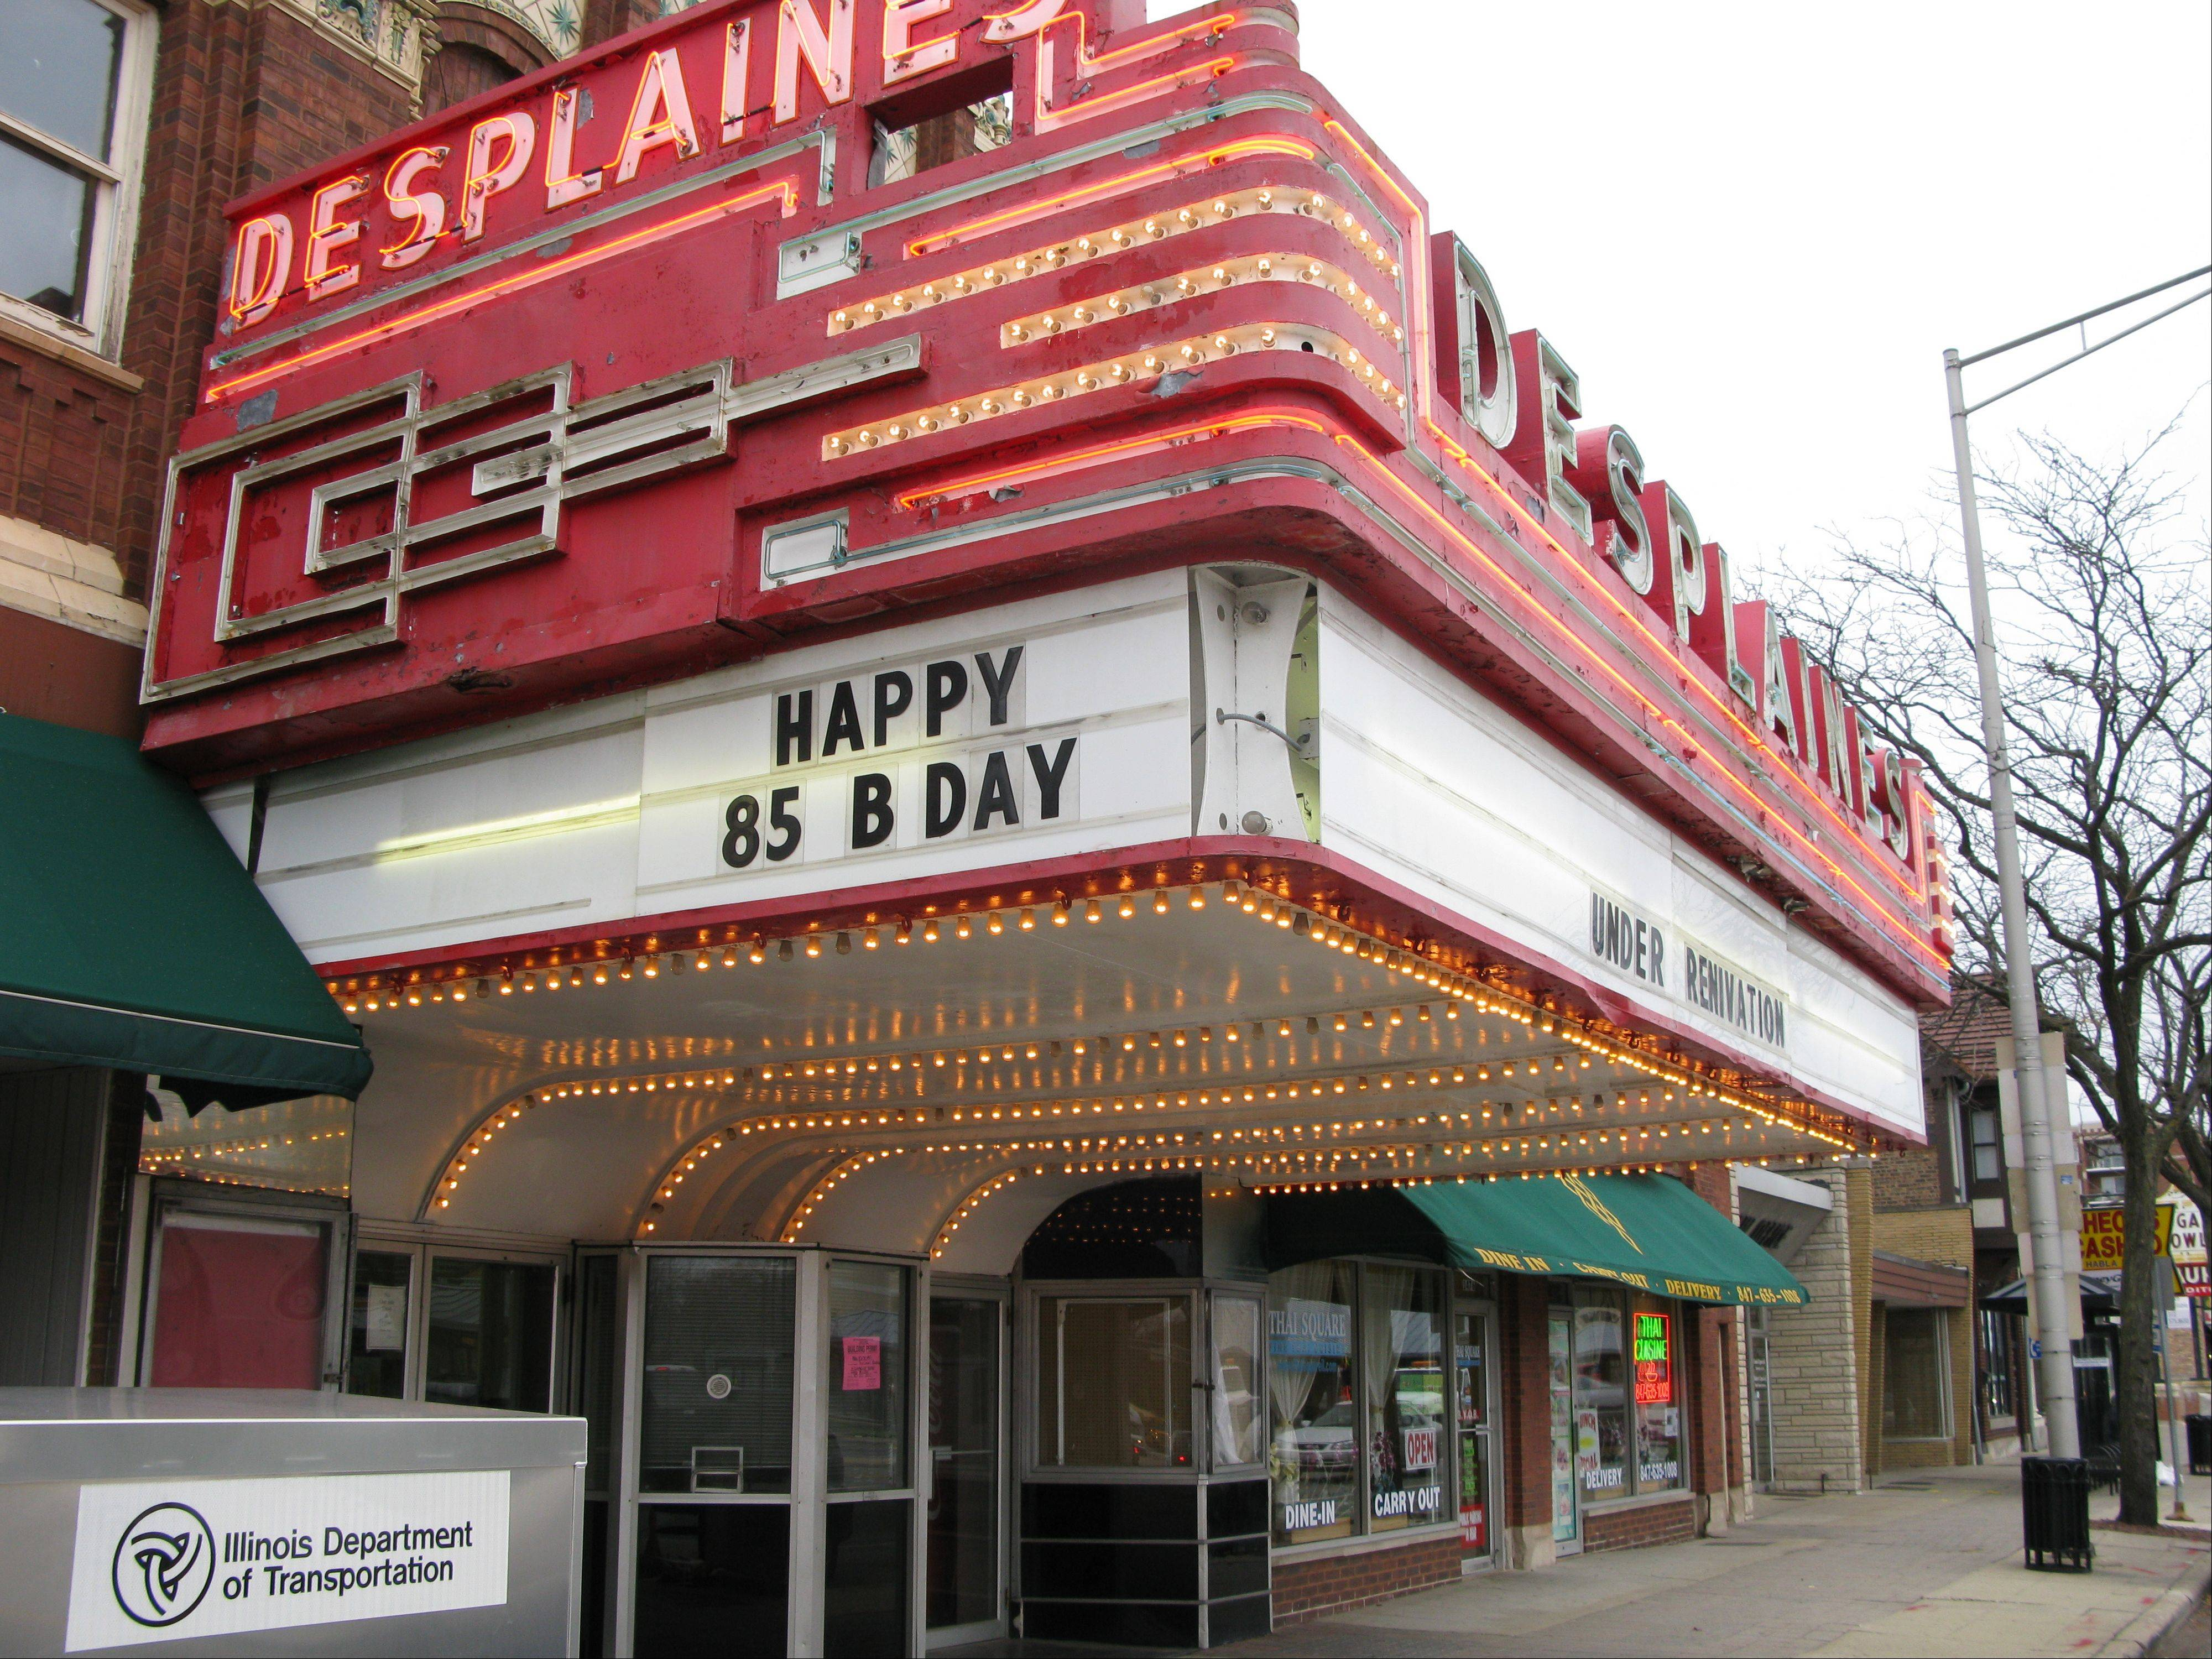 The city gave the Des Plaines Theatre 13 months to fix a variety of code issues Tuesday night.